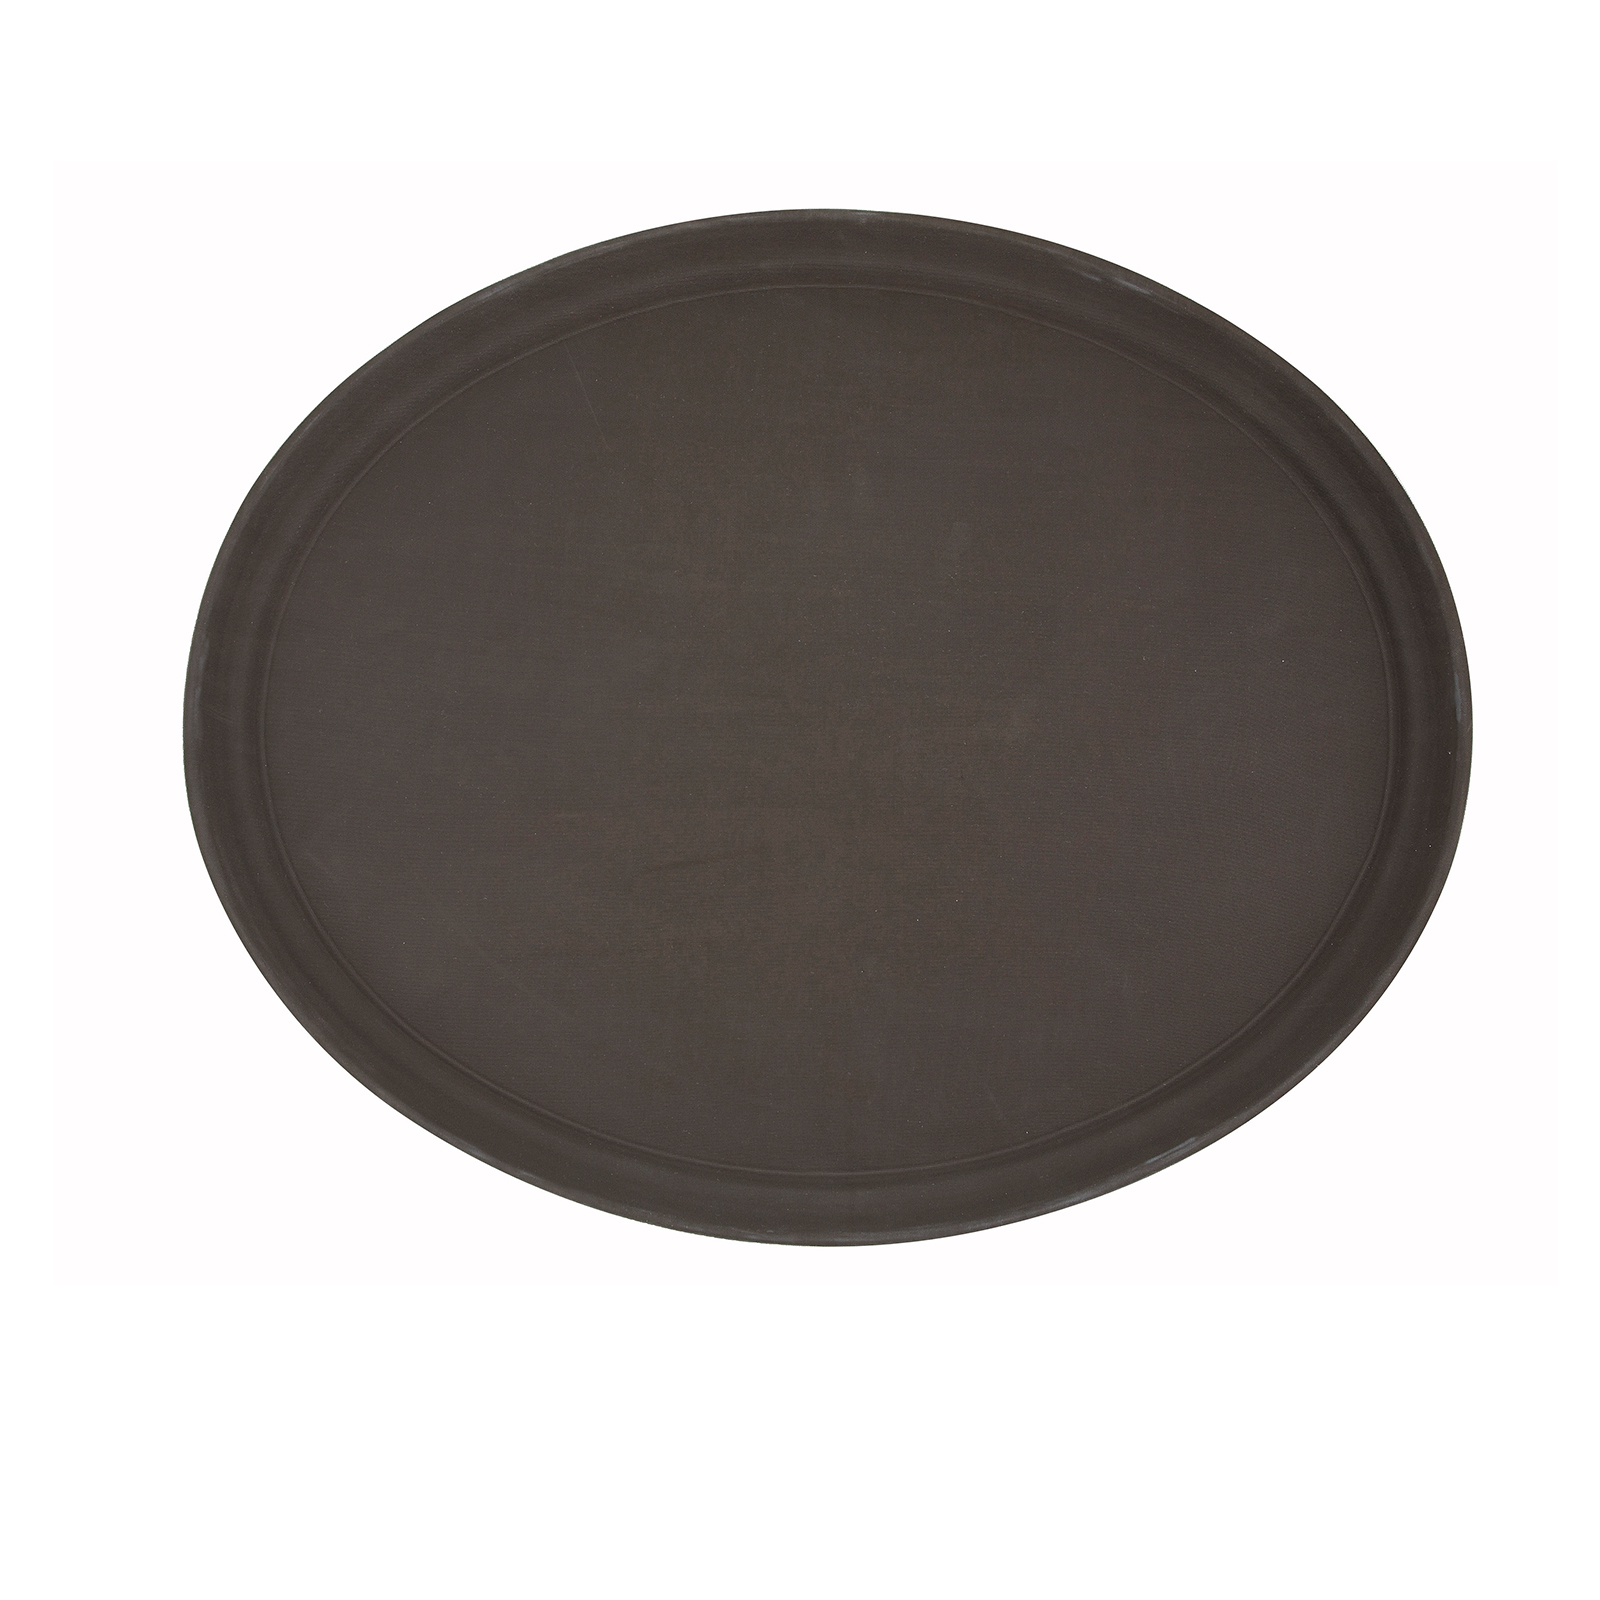 3150-122 Winco TFG-2622N serving tray, non-skid